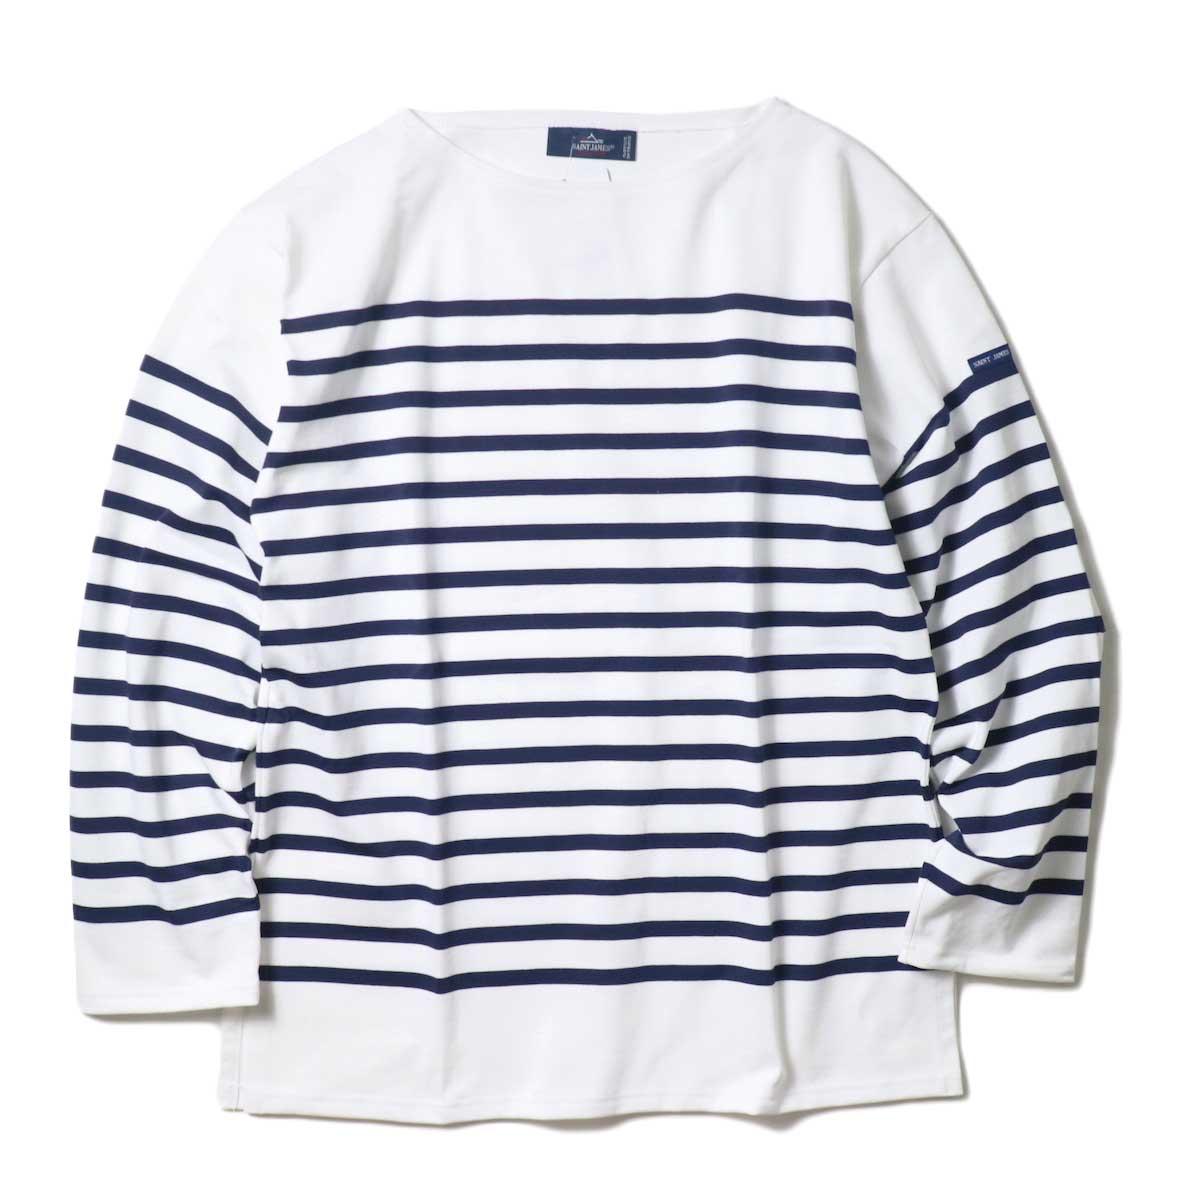 SAINT JAMES / NAVAL (Neige / Marine) 正面